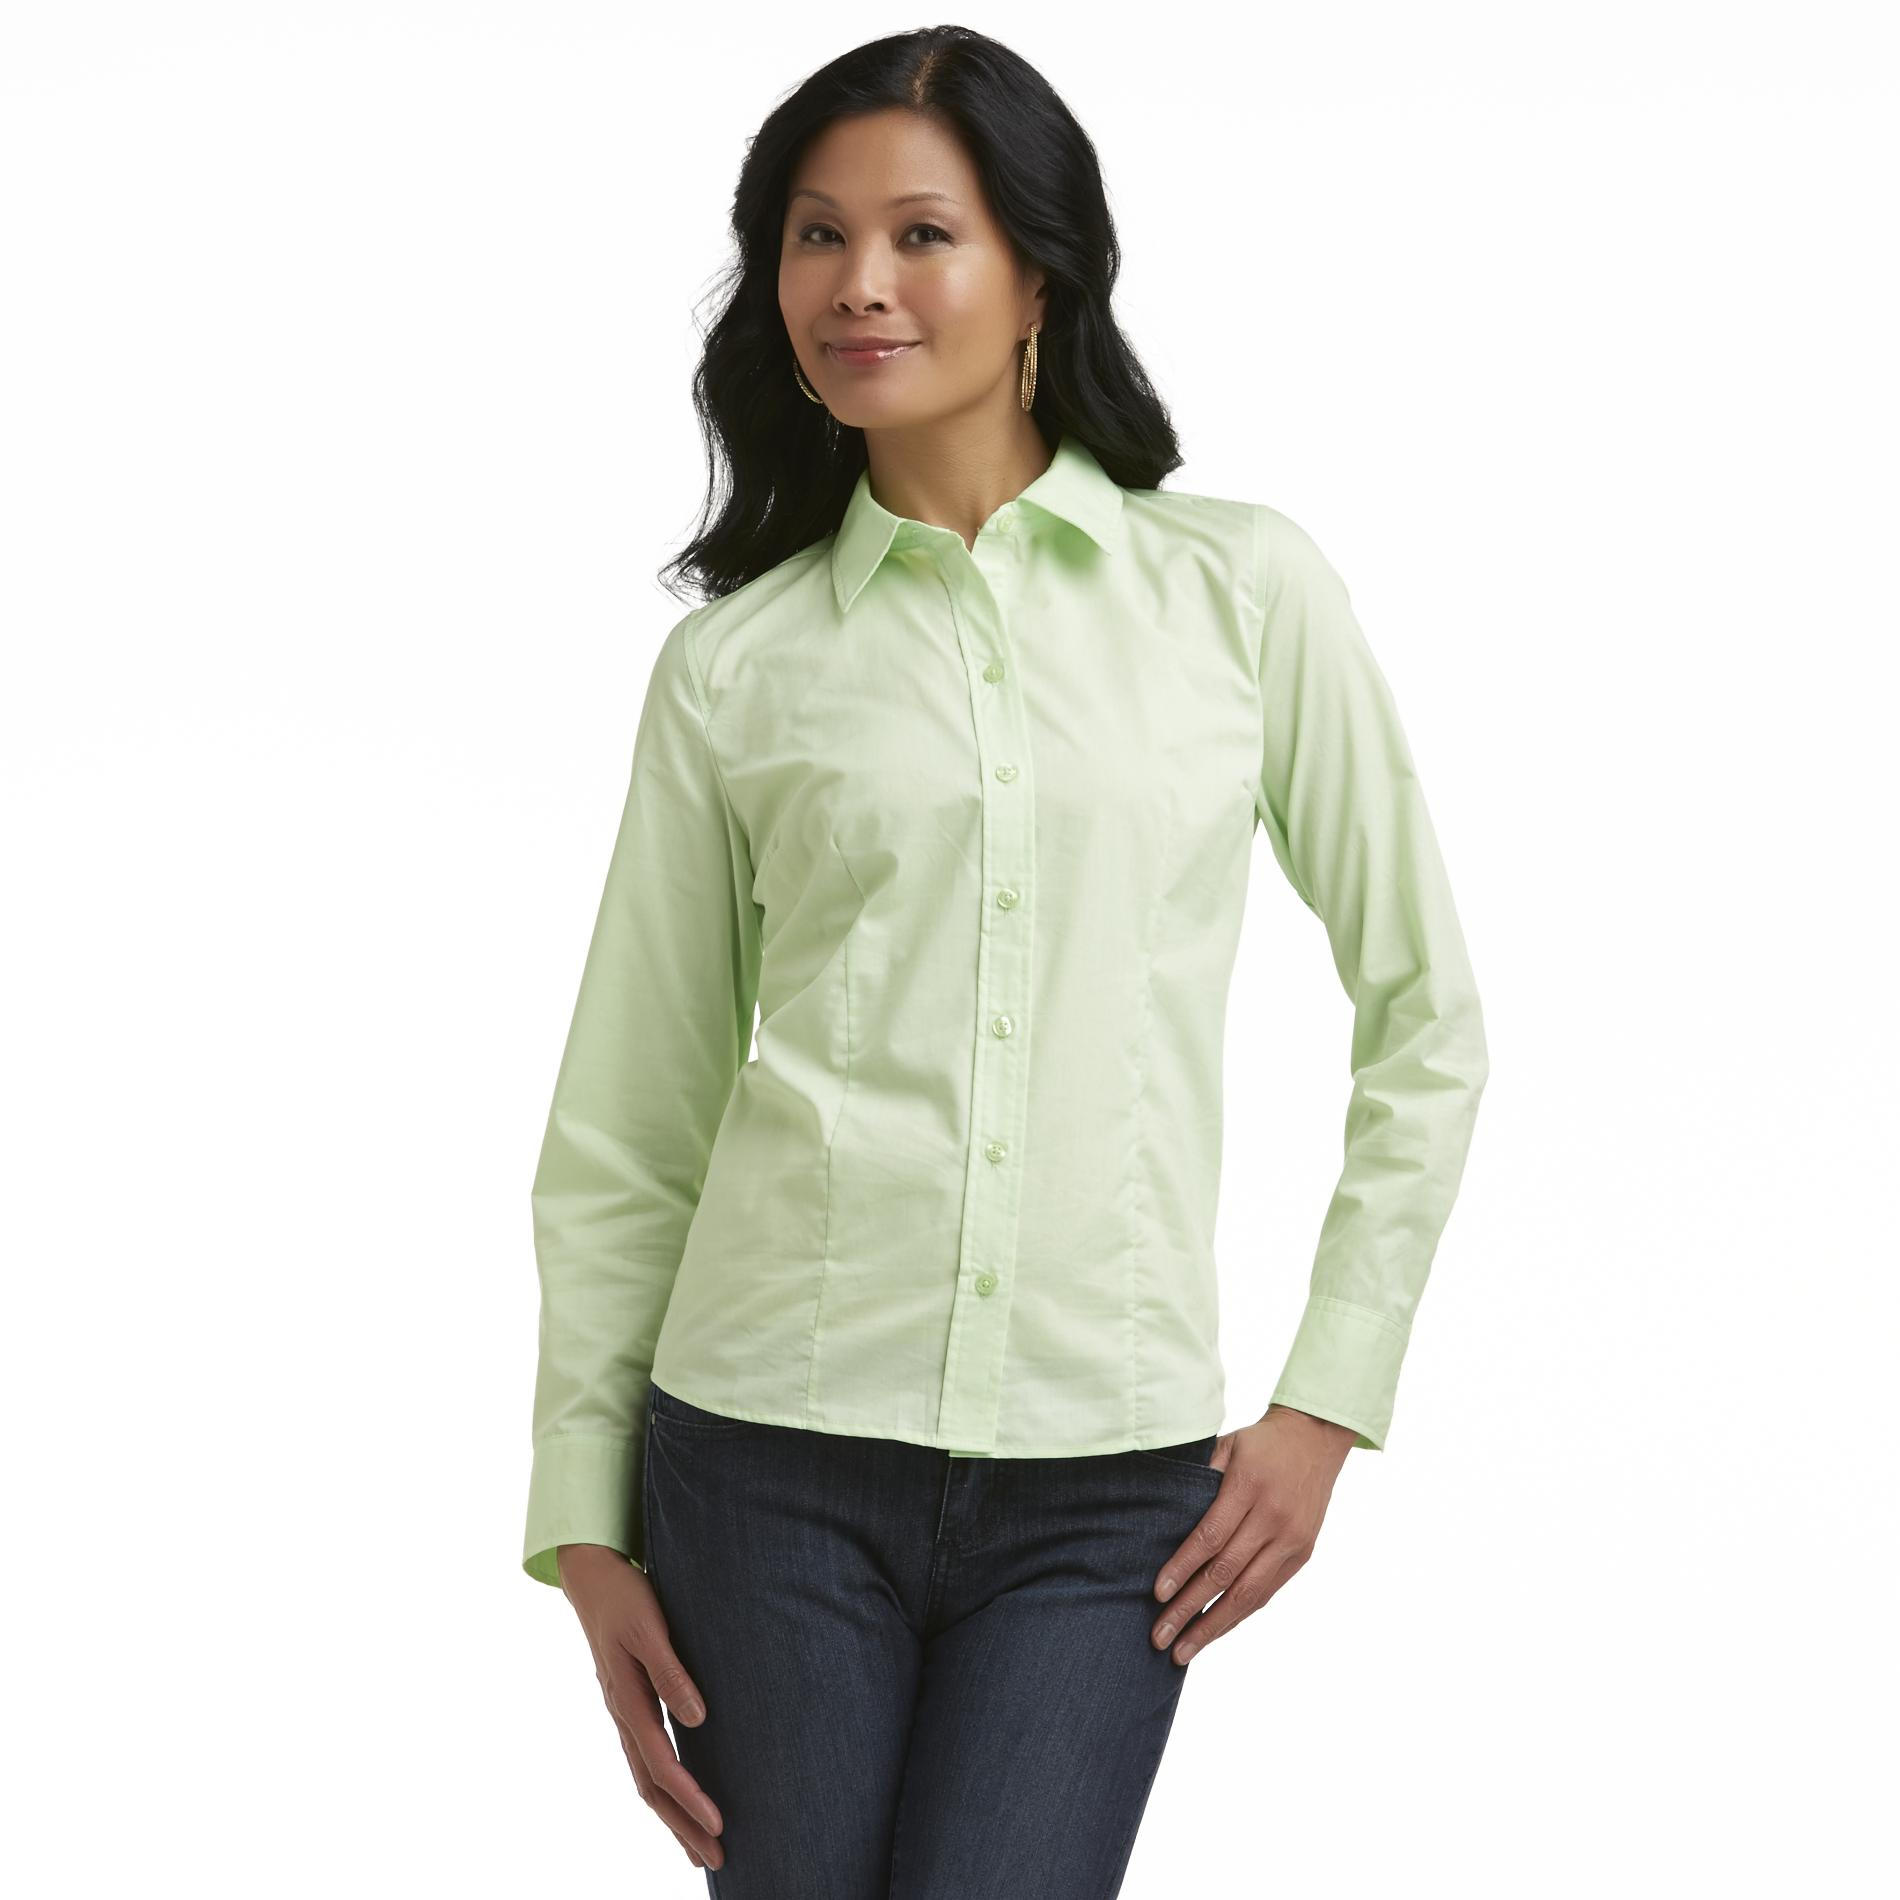 Basic Editions Women's Plus Easy-Care Shaped Shirt at Kmart.com